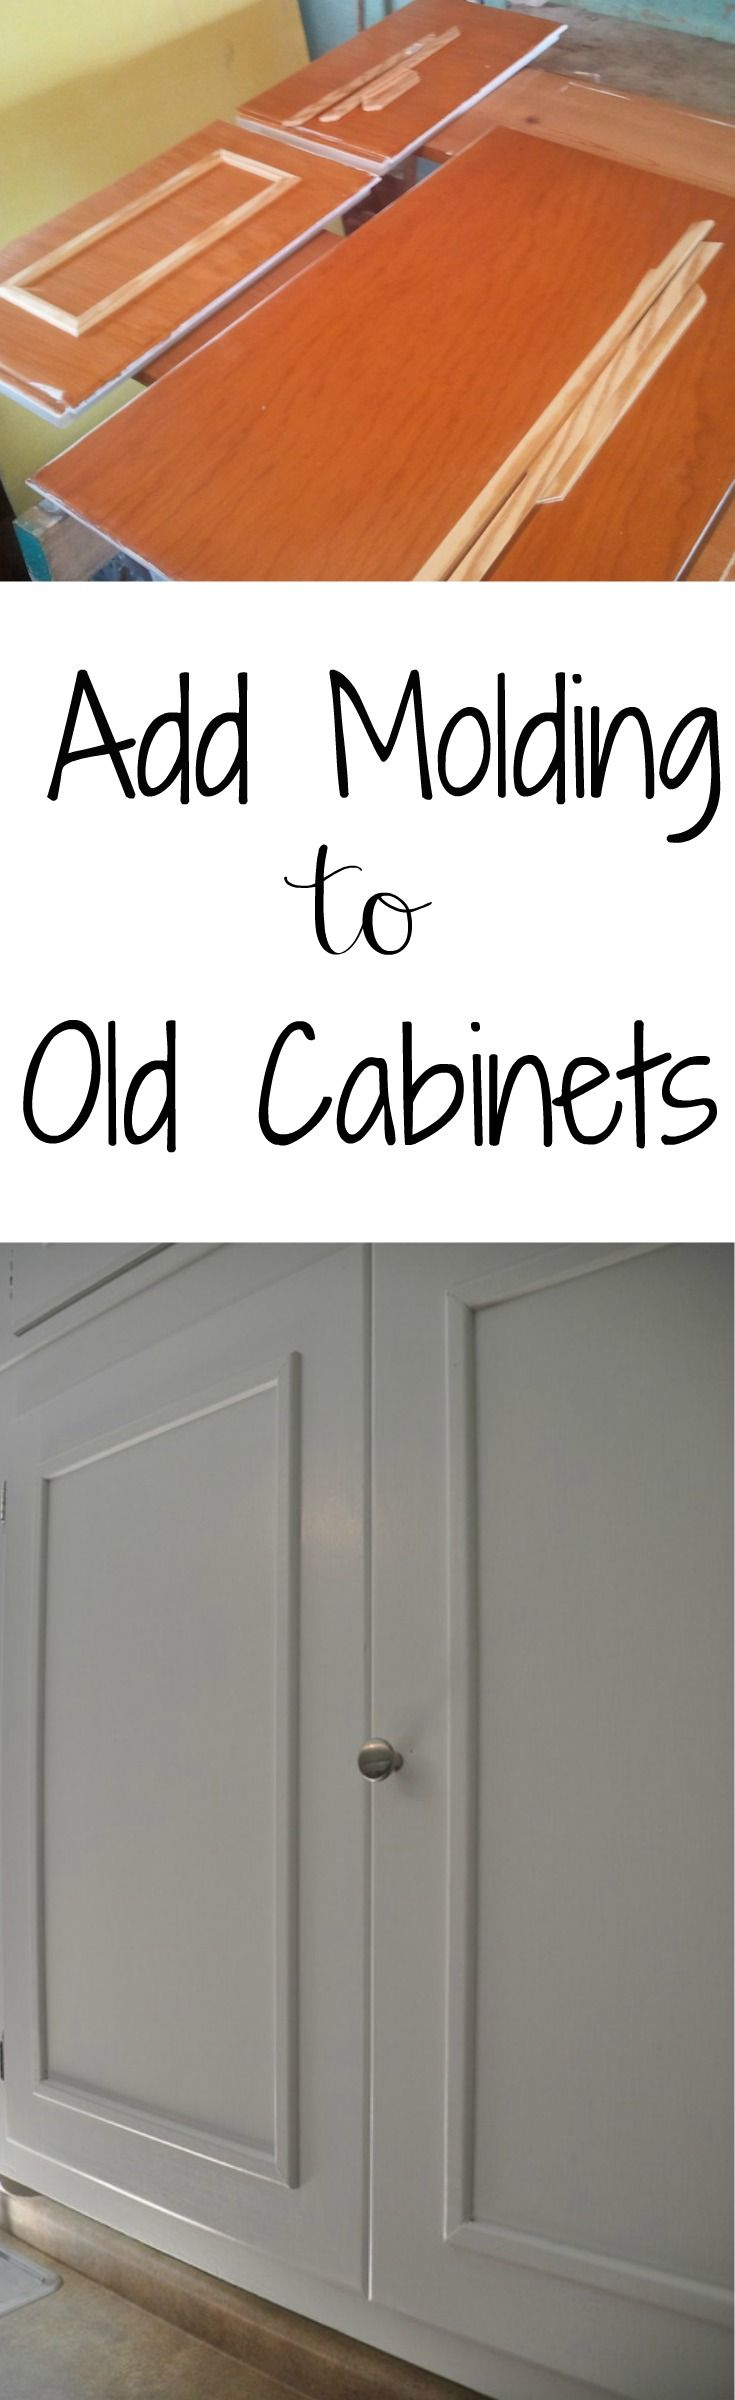 Great Way To Update Old Cabinets!